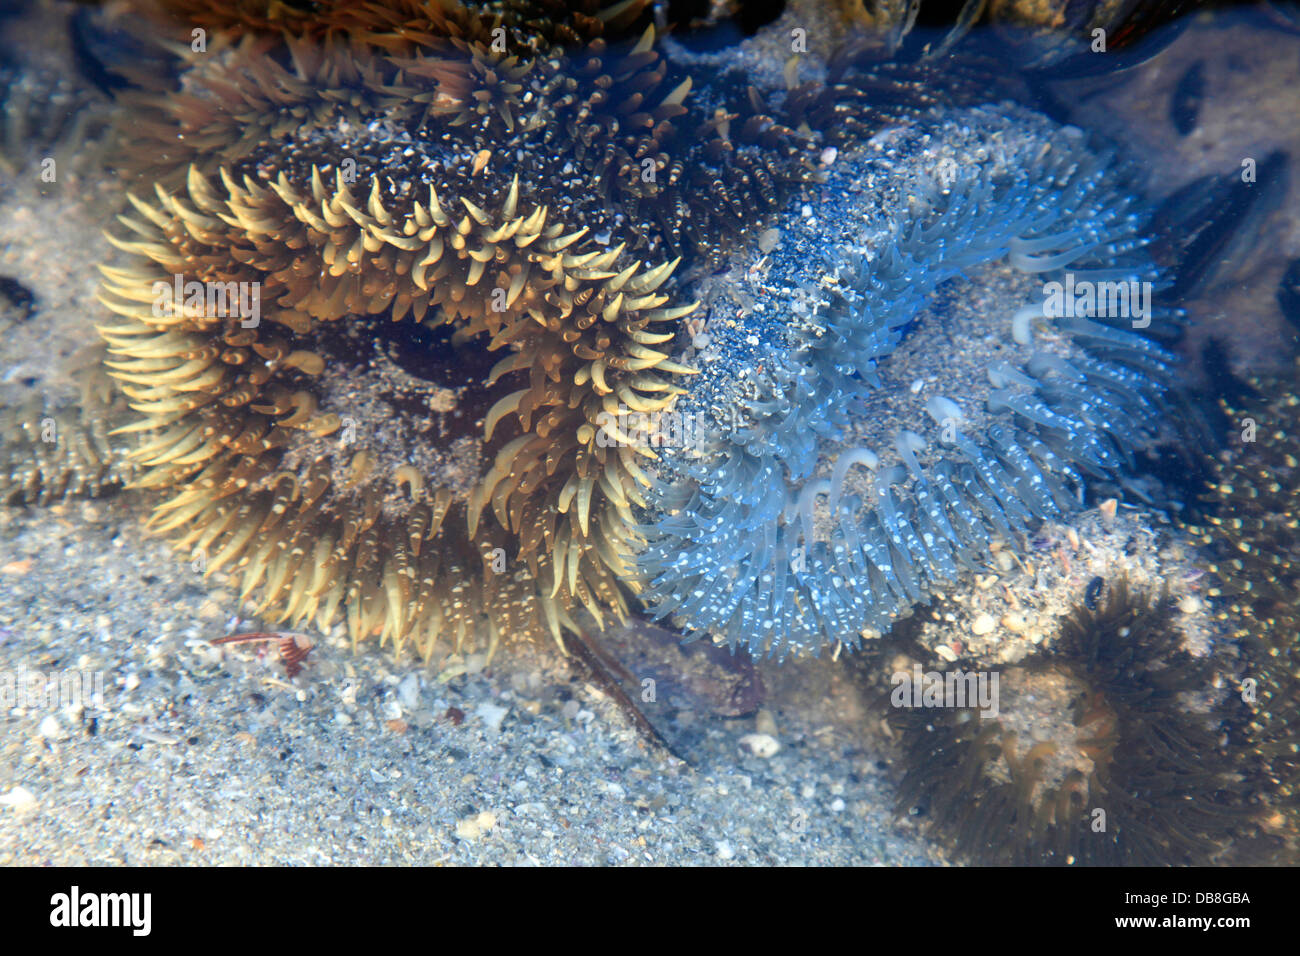 Sea Anemones In Rock Pool At Clifton Beach Cape Town Stock Photo Royalty Free Image 58580798